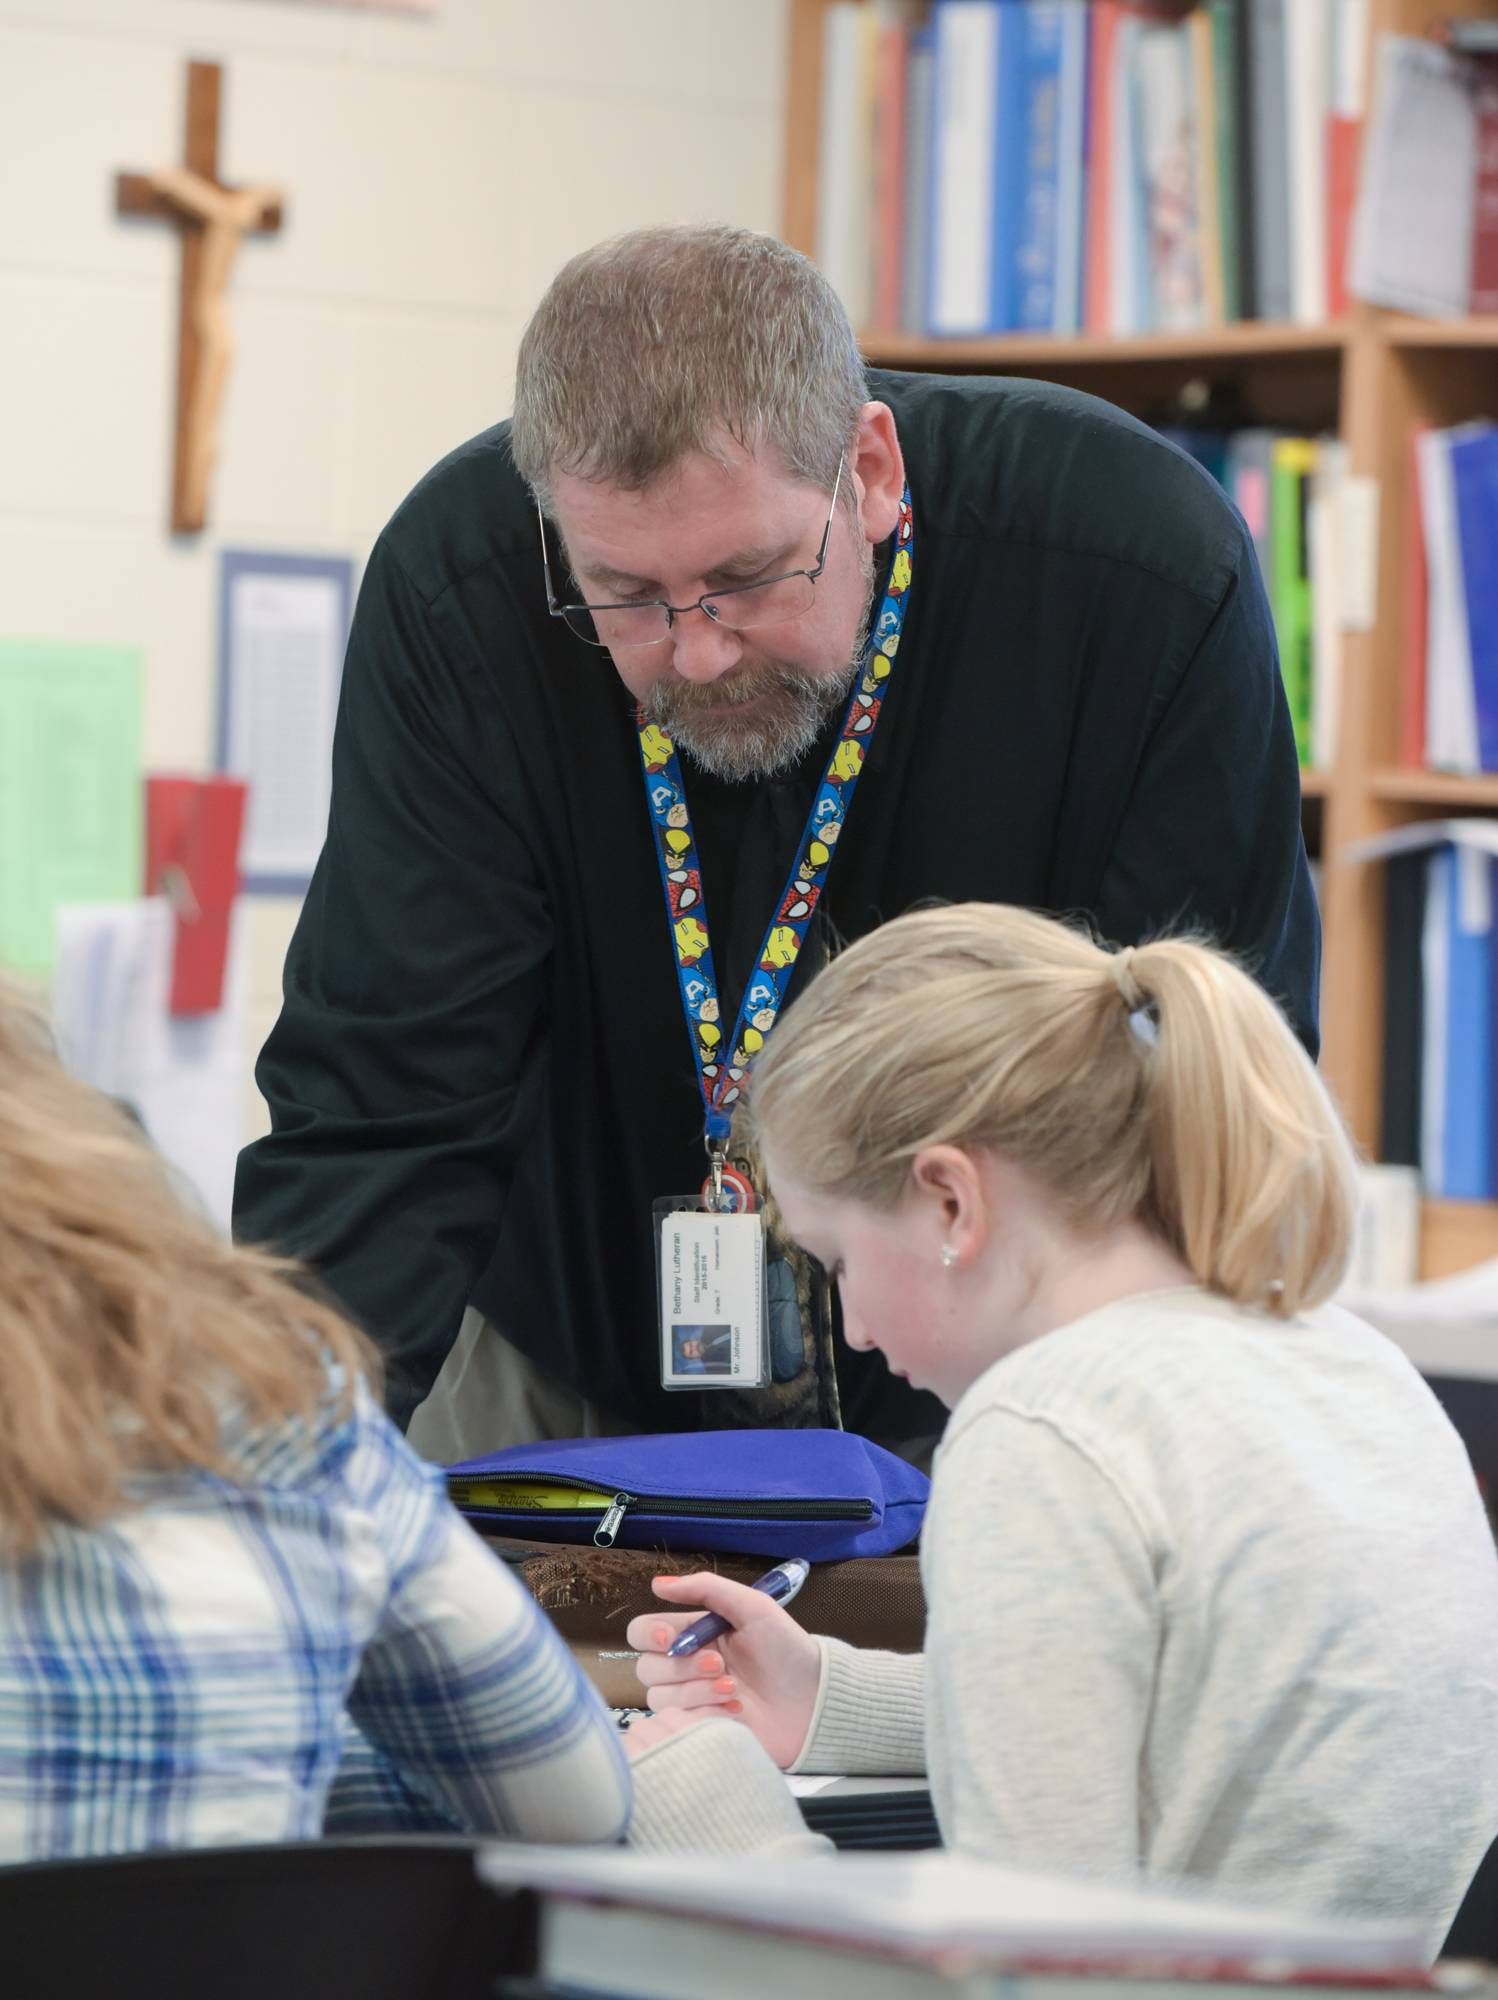 Bethany Lutheran School teacher Rob Johnson works with Brittany Johnson, who also happens to be his daughter, during an Algebra I class at the Naperville school.